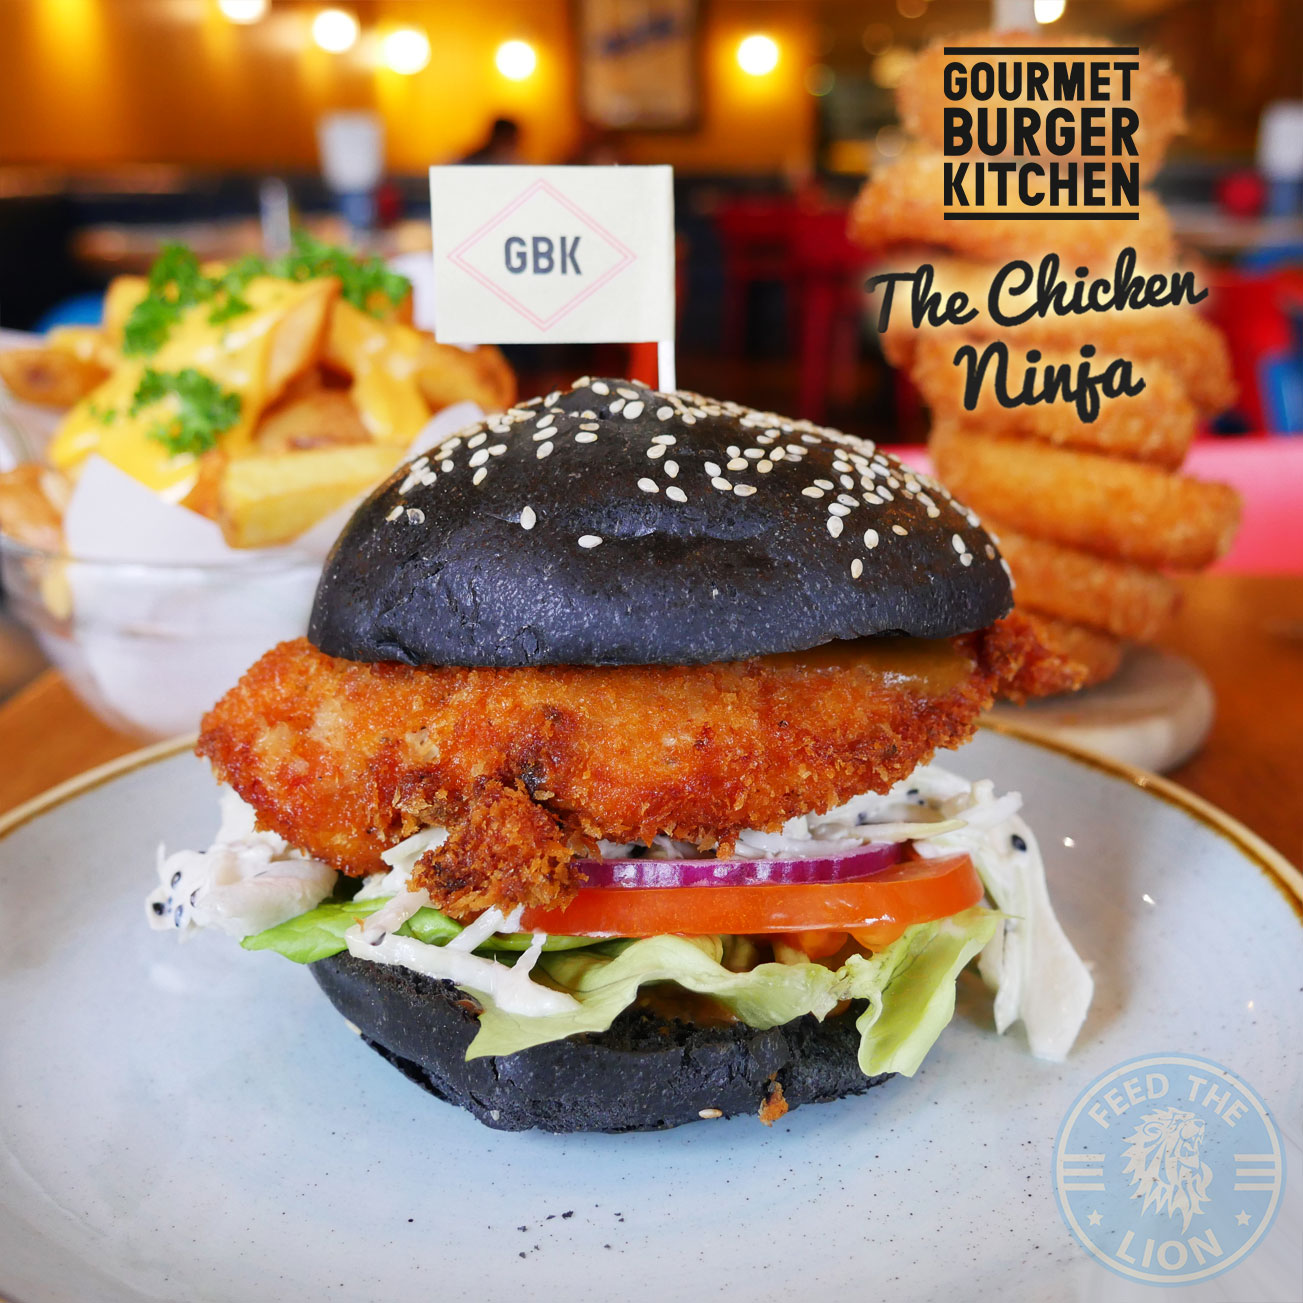 The Chicken Ninja  Gourmet Burger Kitchen  Feed the Lion